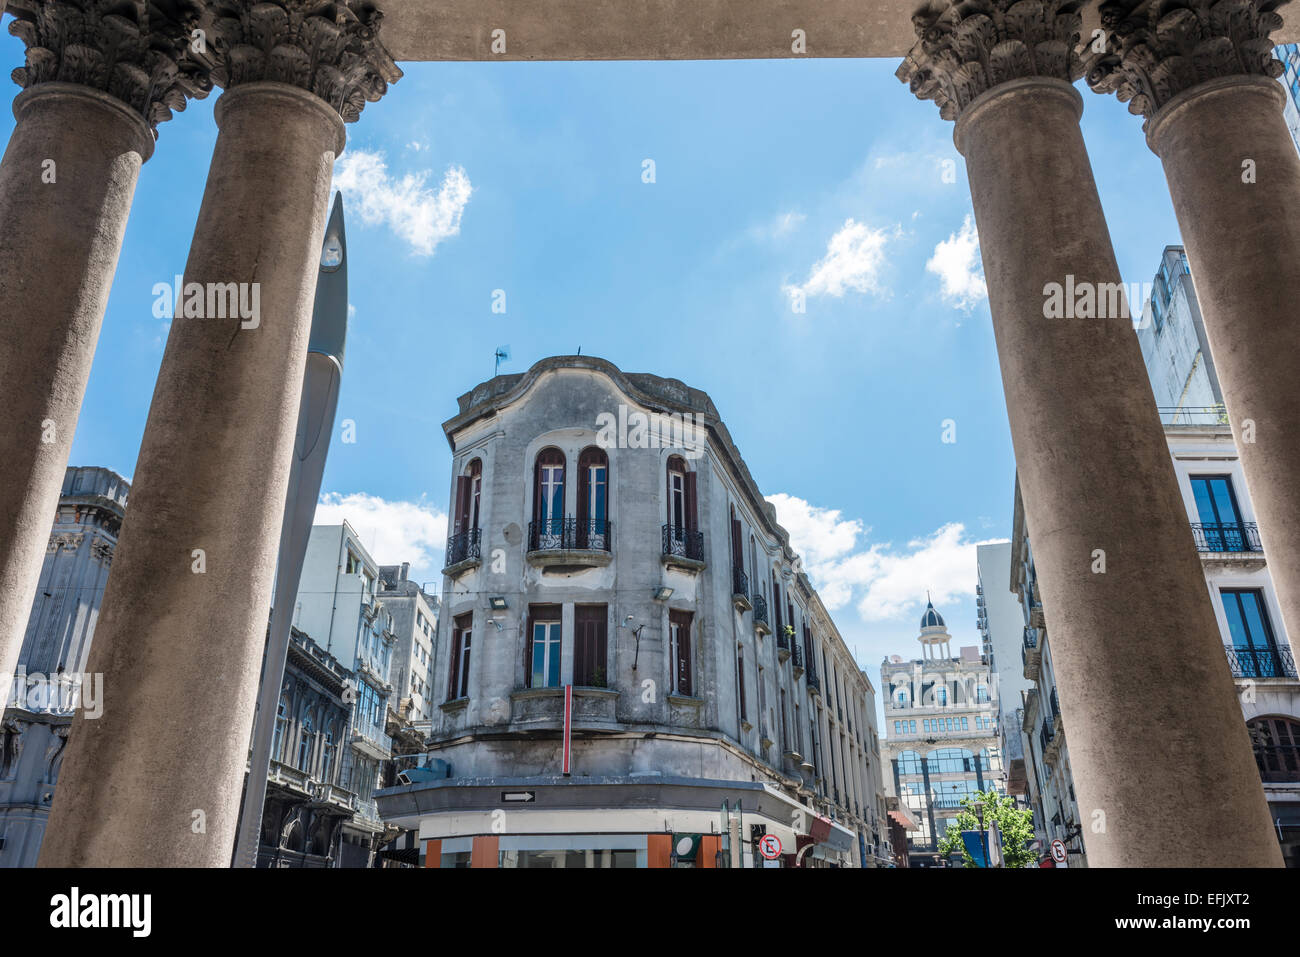 View of the old city from the colonnade of the theater Solis, Montevideo, Uruguay - Stock Image